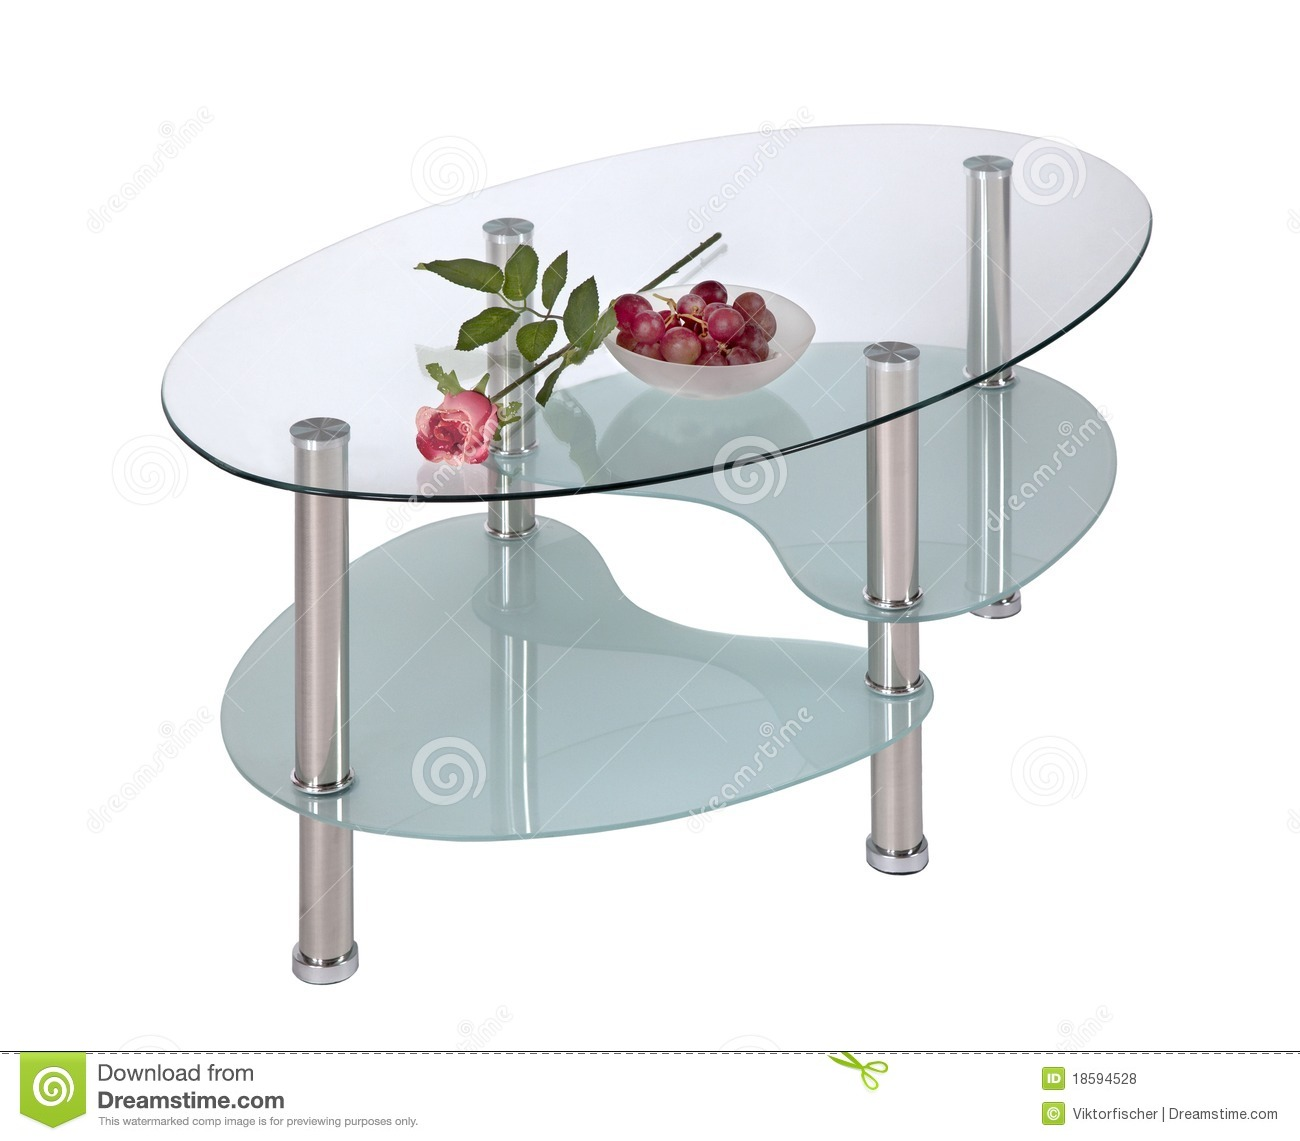 Glass Top Coffee Table Royalty Free Stock Photos Image  : glass top coffee table 18594528 from dreamstime.com size 1300 x 1141 jpeg 141kB